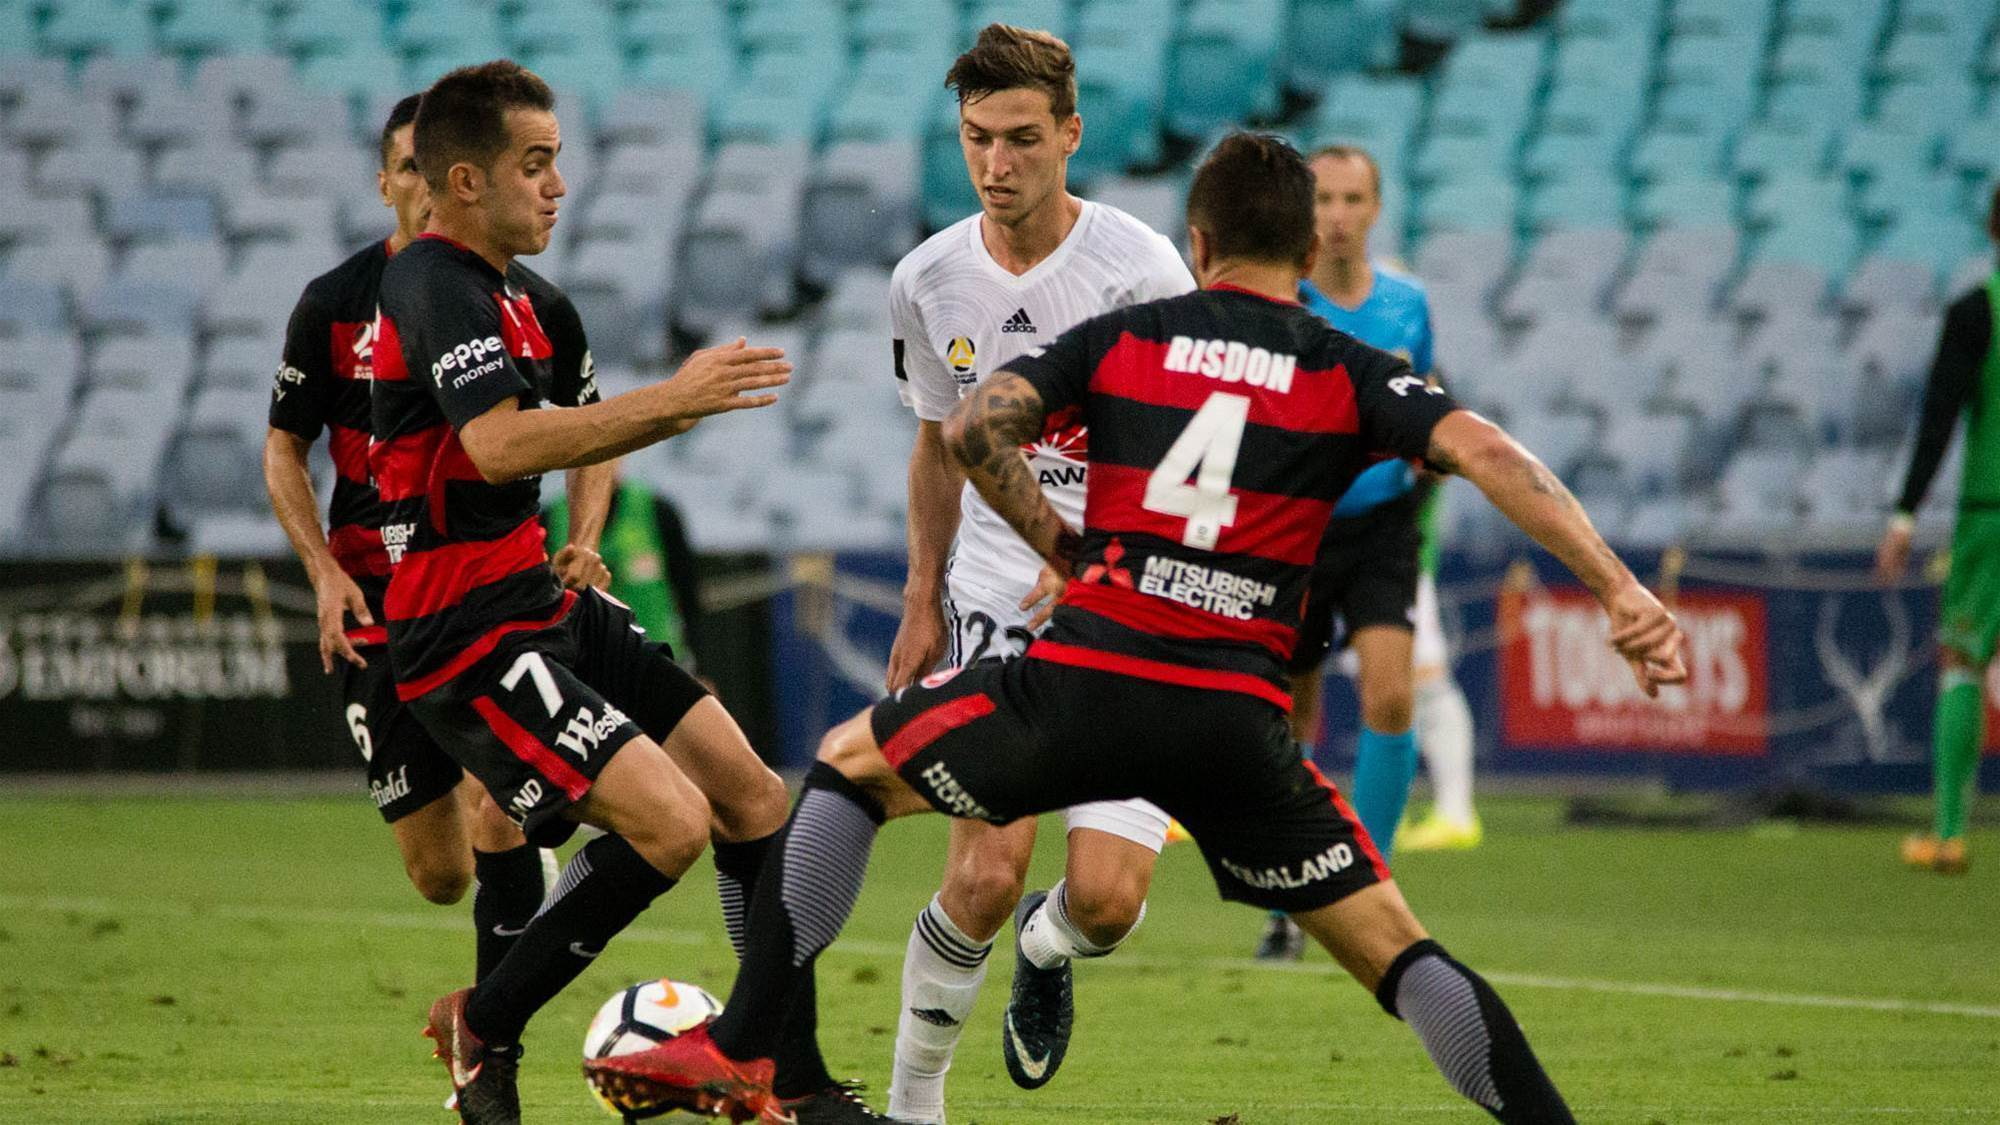 Western Sydney Wanderers v Wellington Phoenix player ratings